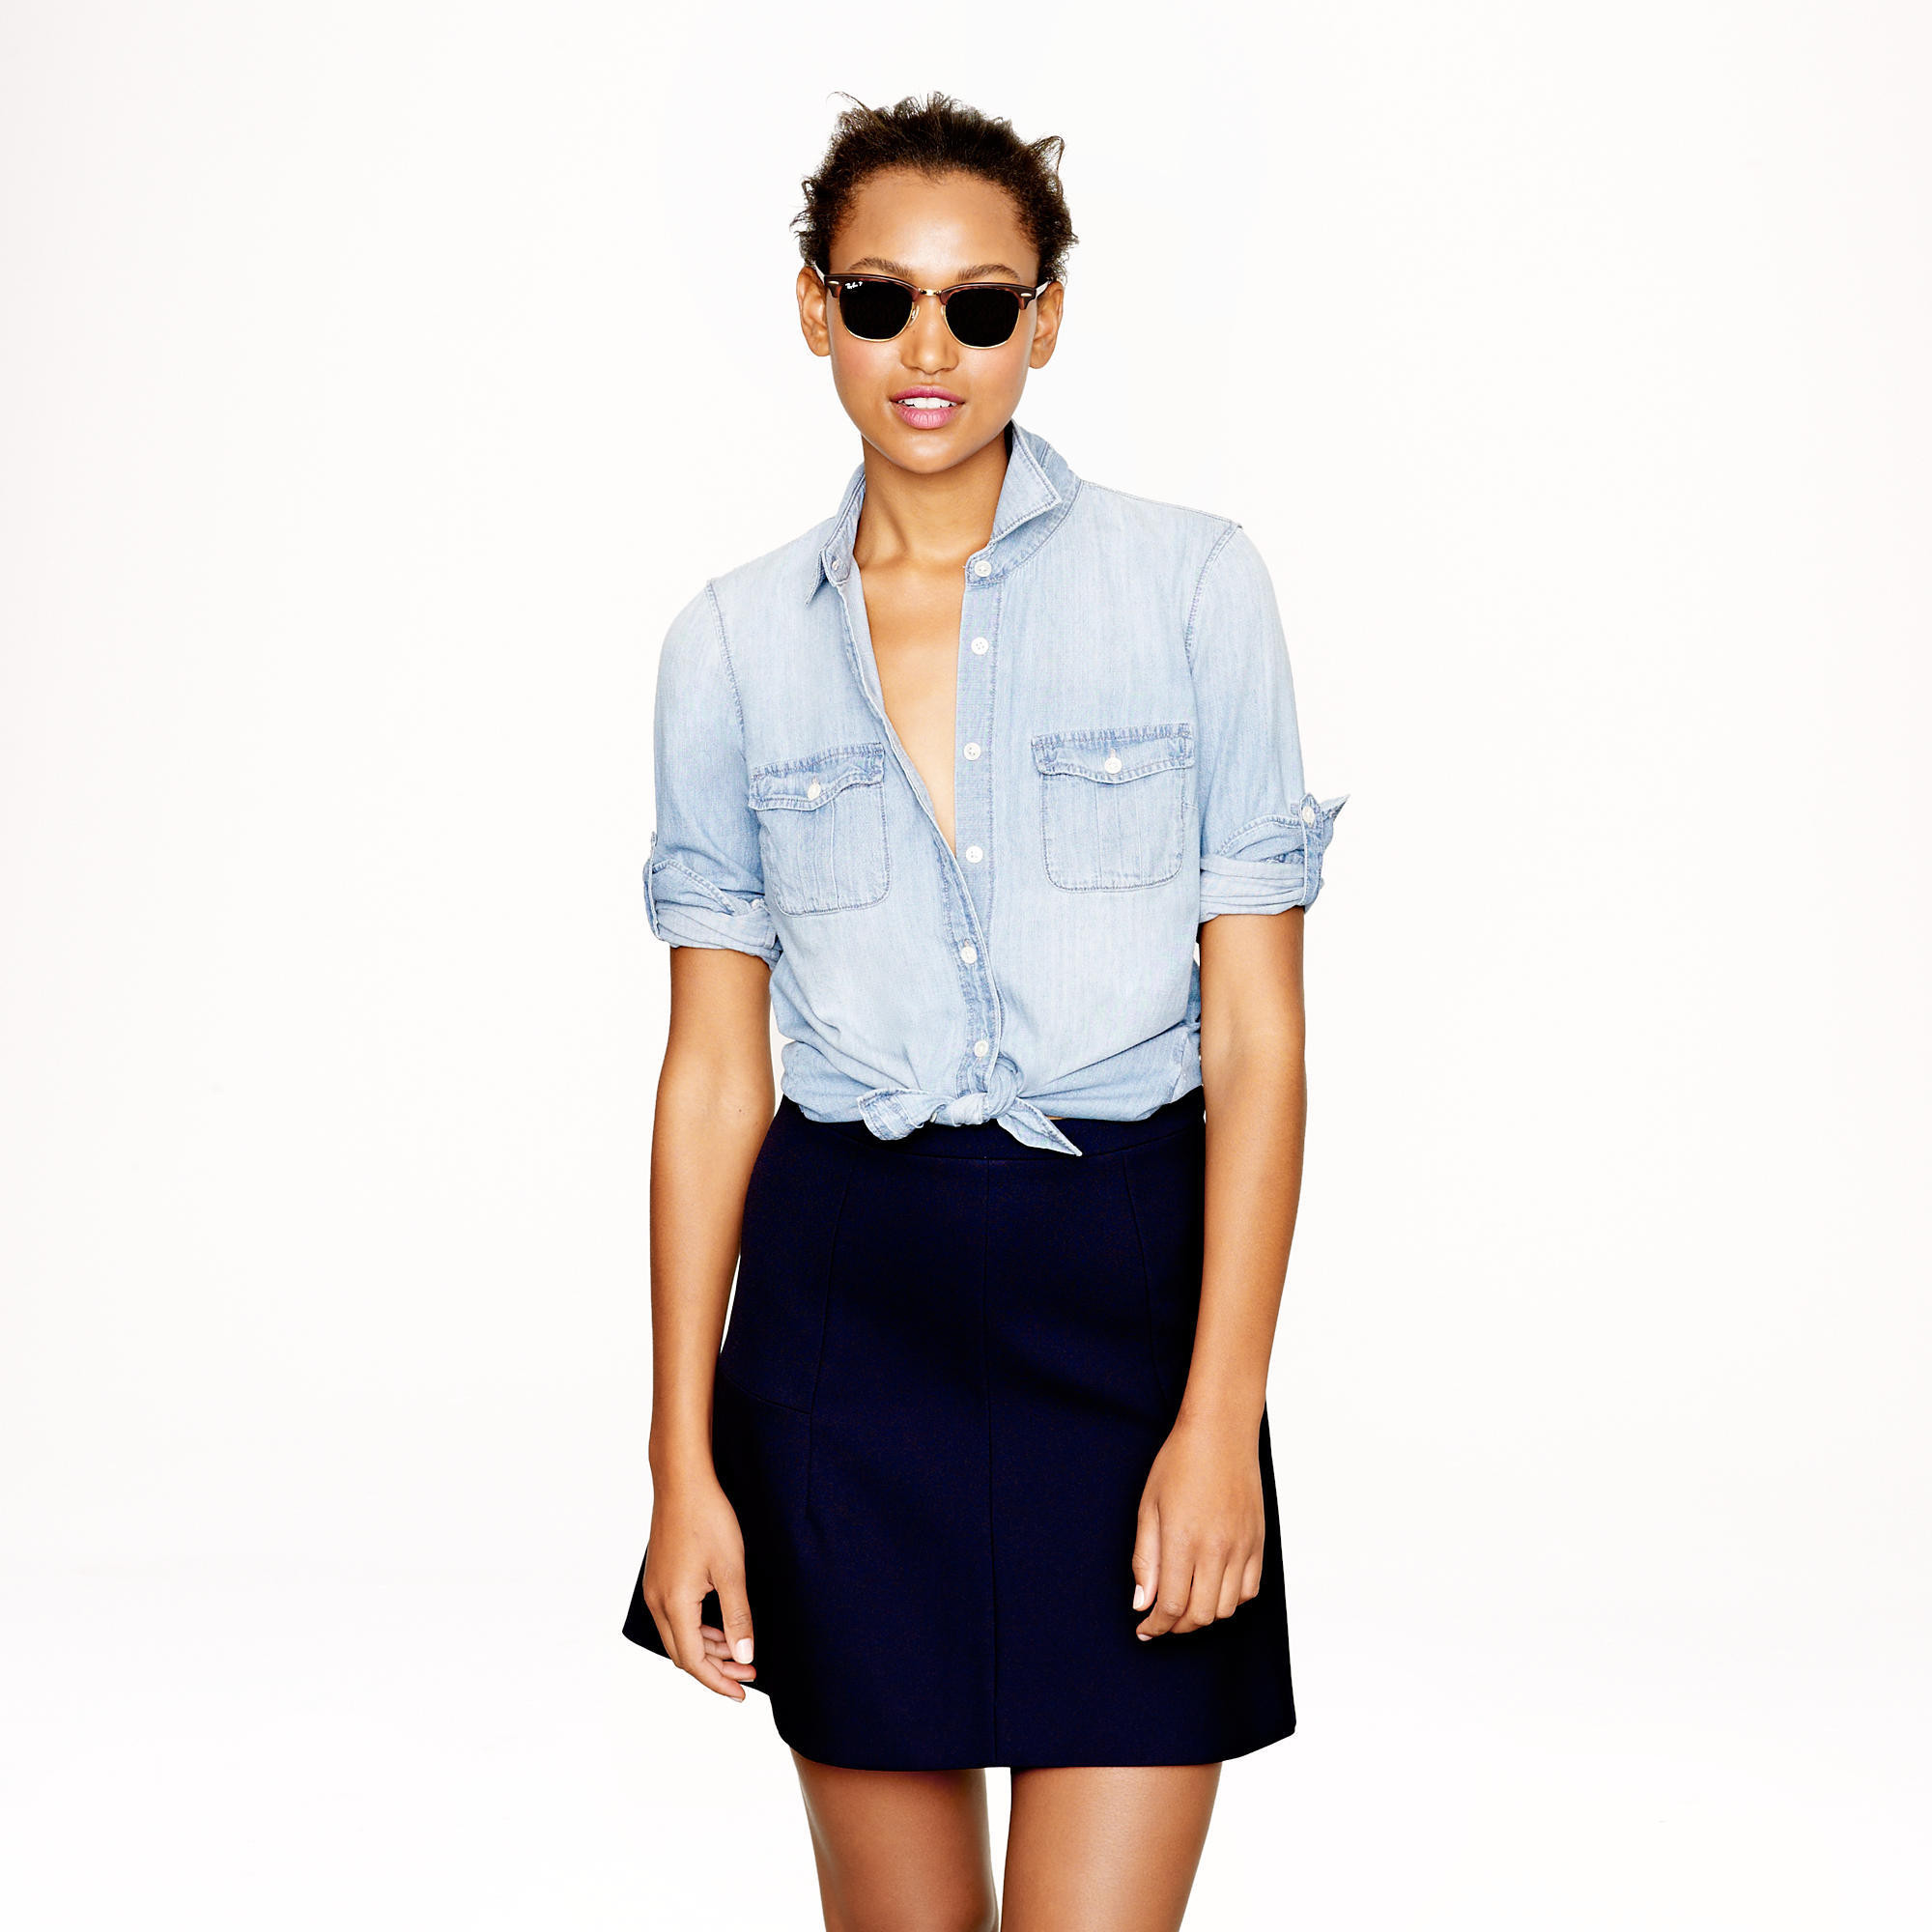 J.Crew Keeper Chambray Shirt in Afternoon Sky, $78, at J.Crew (Source: J.Crew)